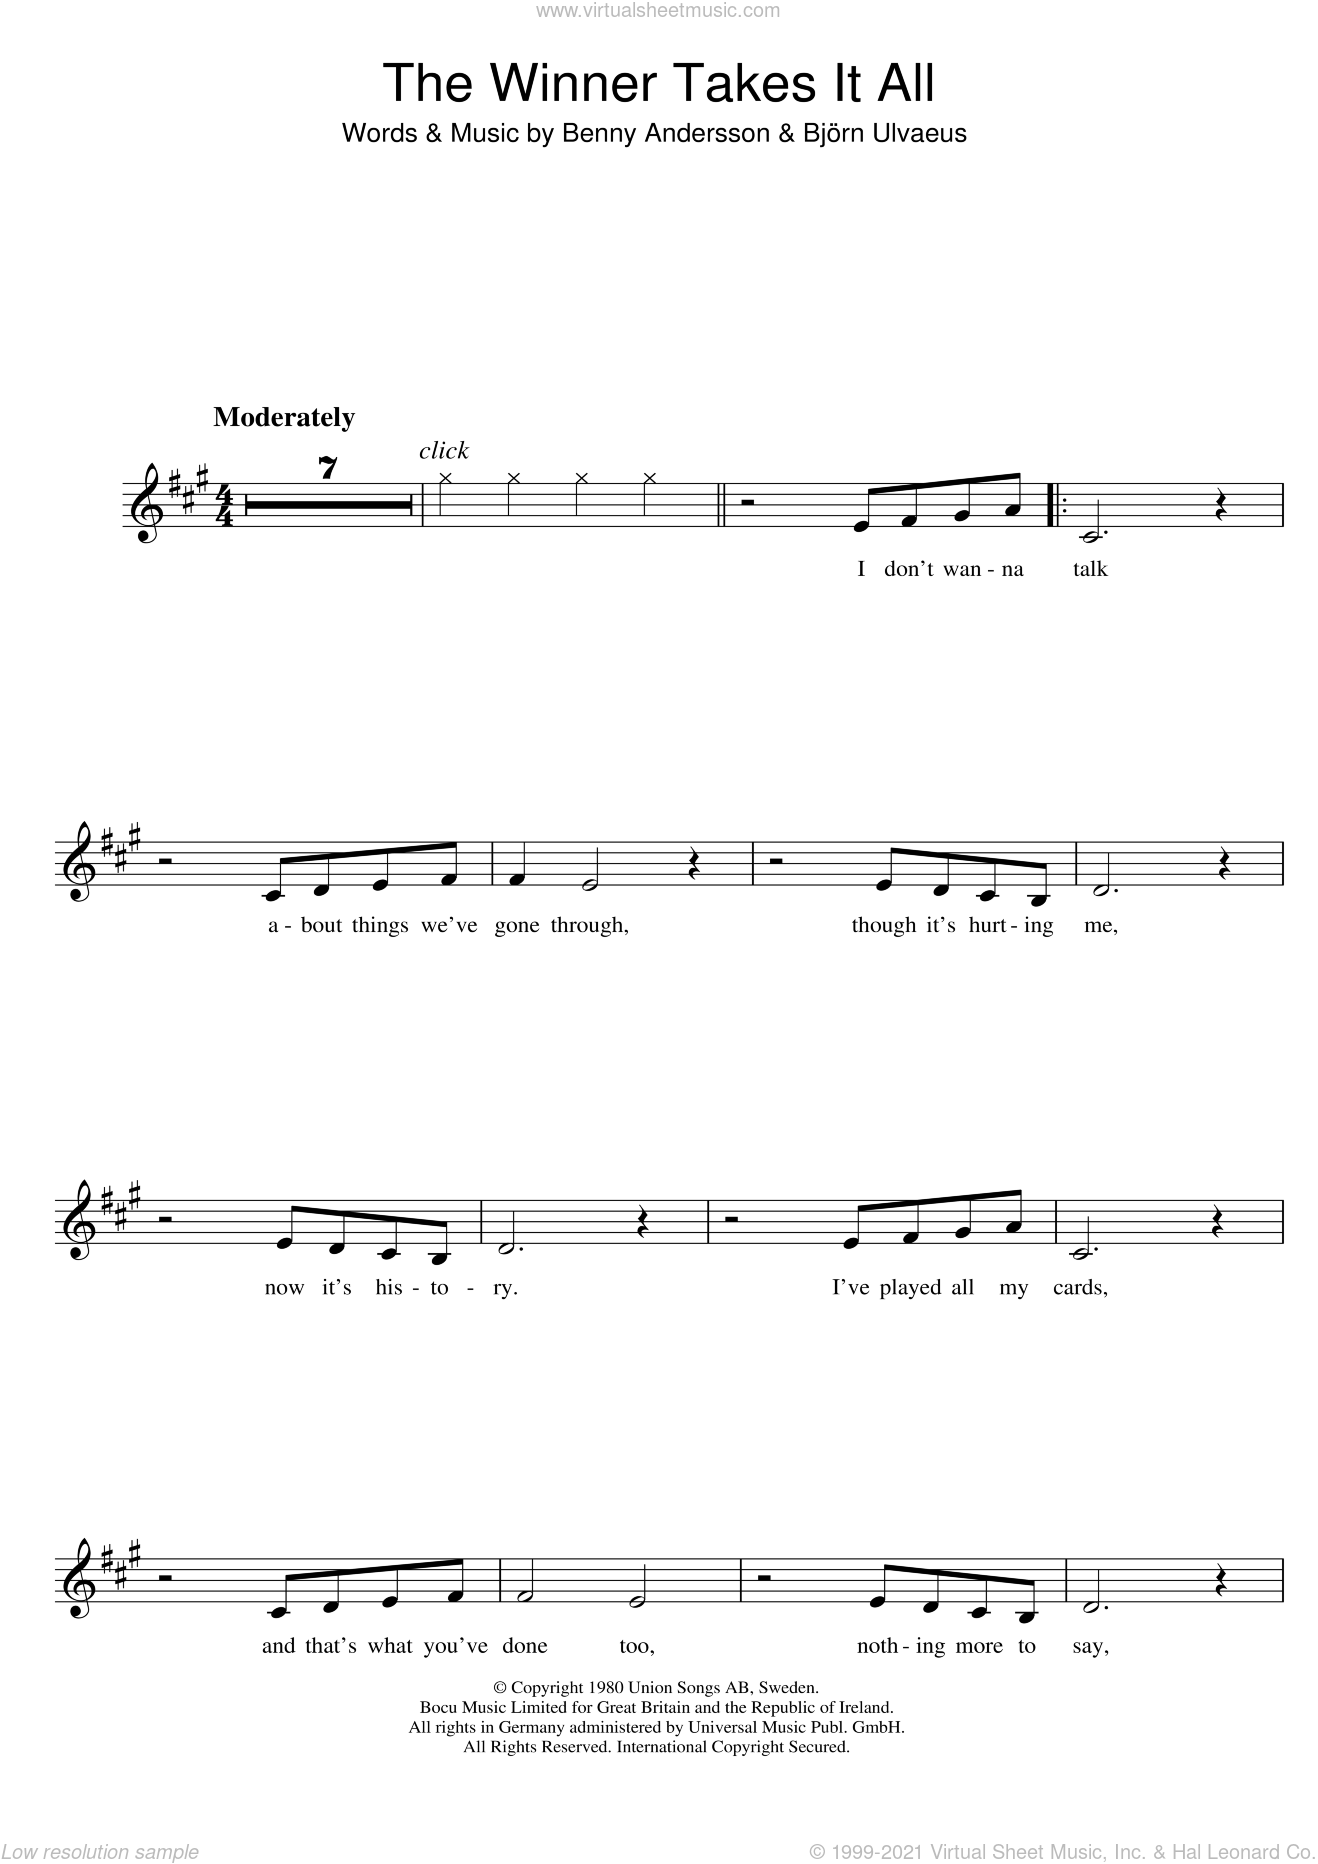 The Winner Takes It All sheet music for clarinet solo by ABBA, Benny Andersson and Bjorn Ulvaeus, intermediate skill level